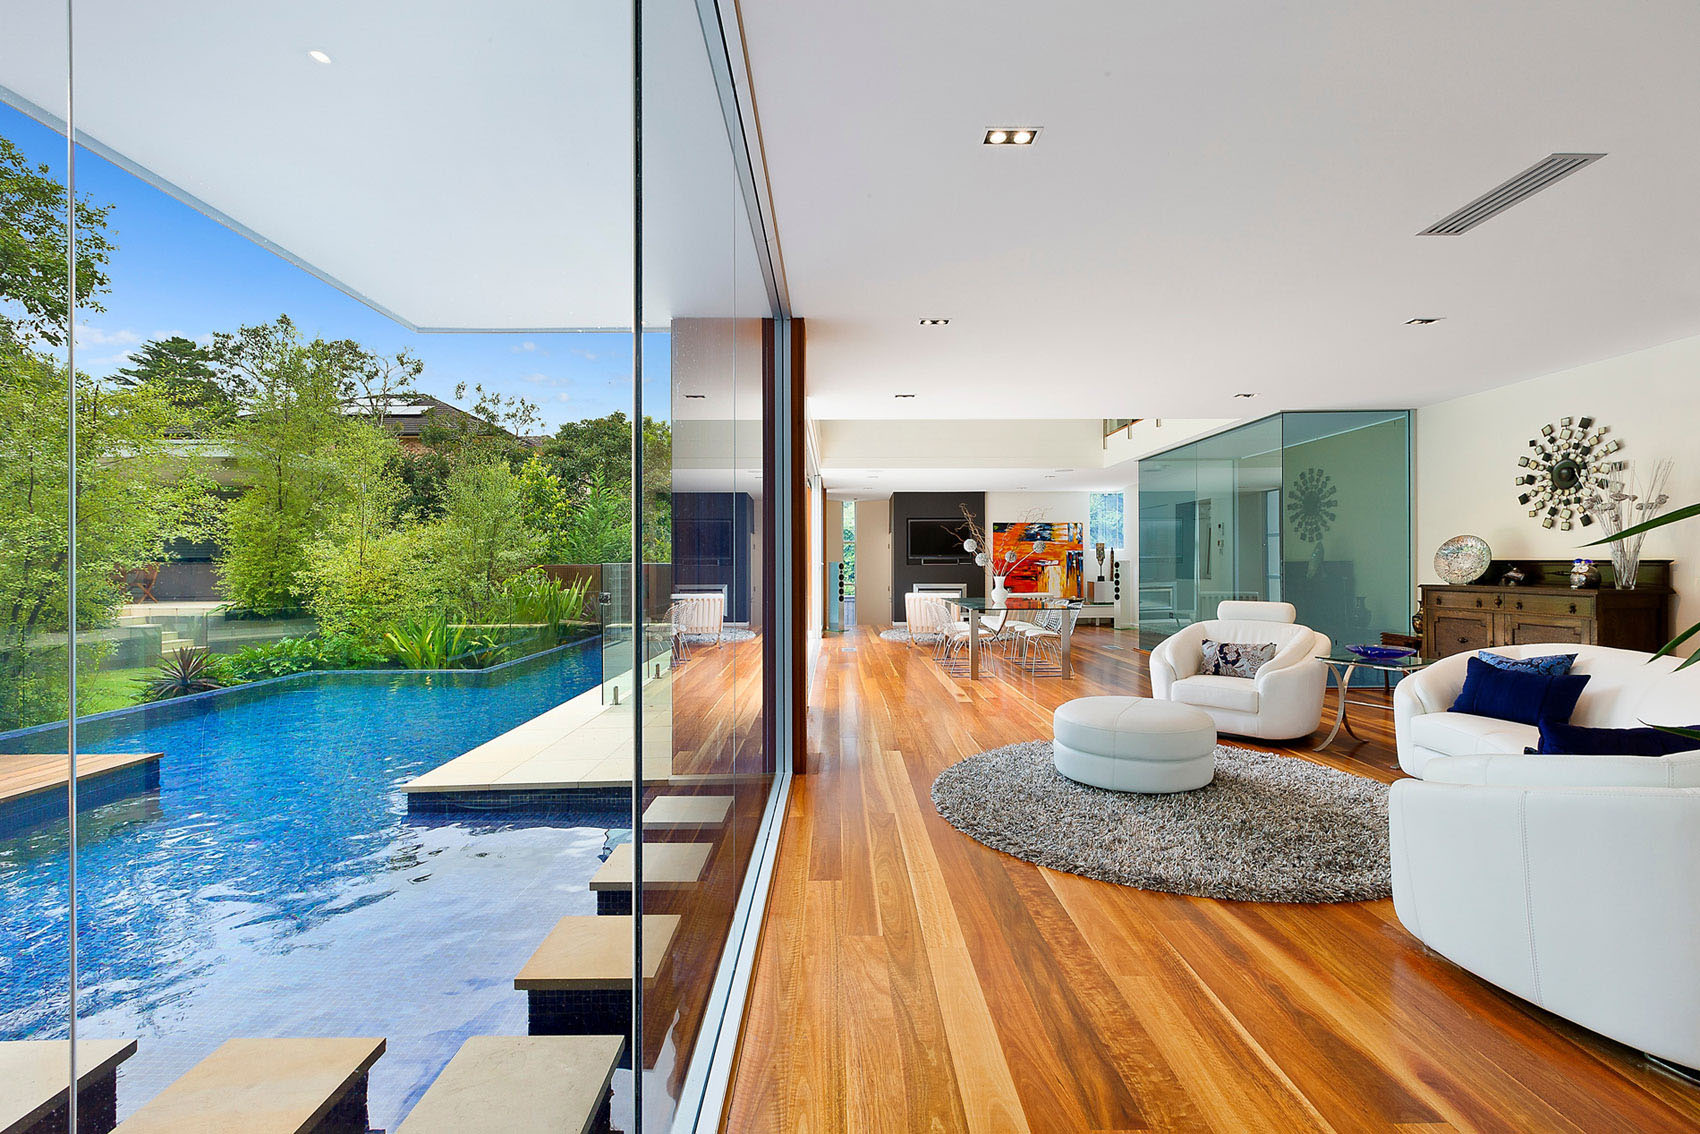 Contemporary Home with Swimming Pool by the Living Room